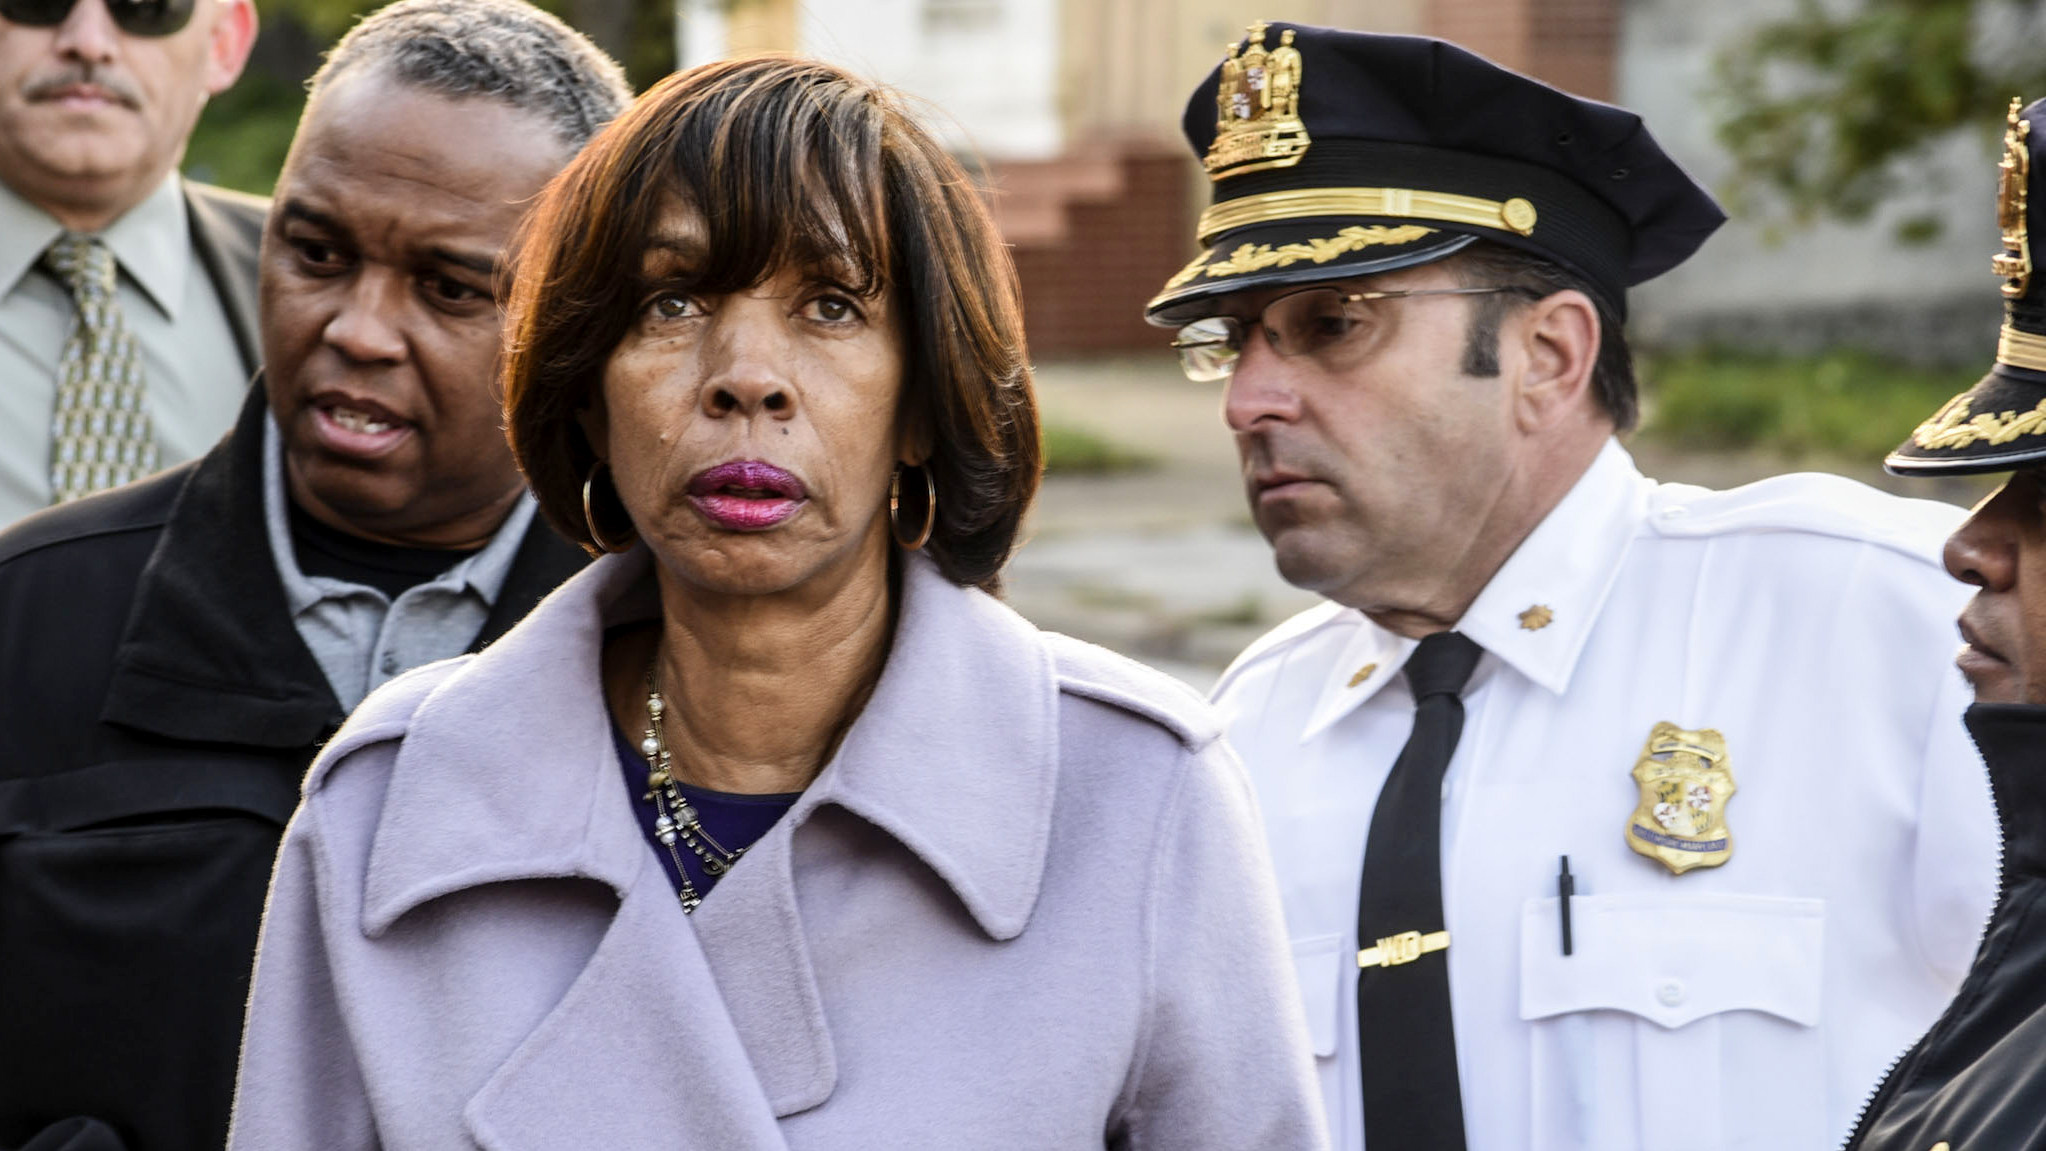 Mayor Catherine Pugh and an entourage of city and police officials tour the Sandtown-Winchester neighborhood. At left, Acting Commissioner Gary Tuggle. At right, Major John Webb. (J.M. Giordano)